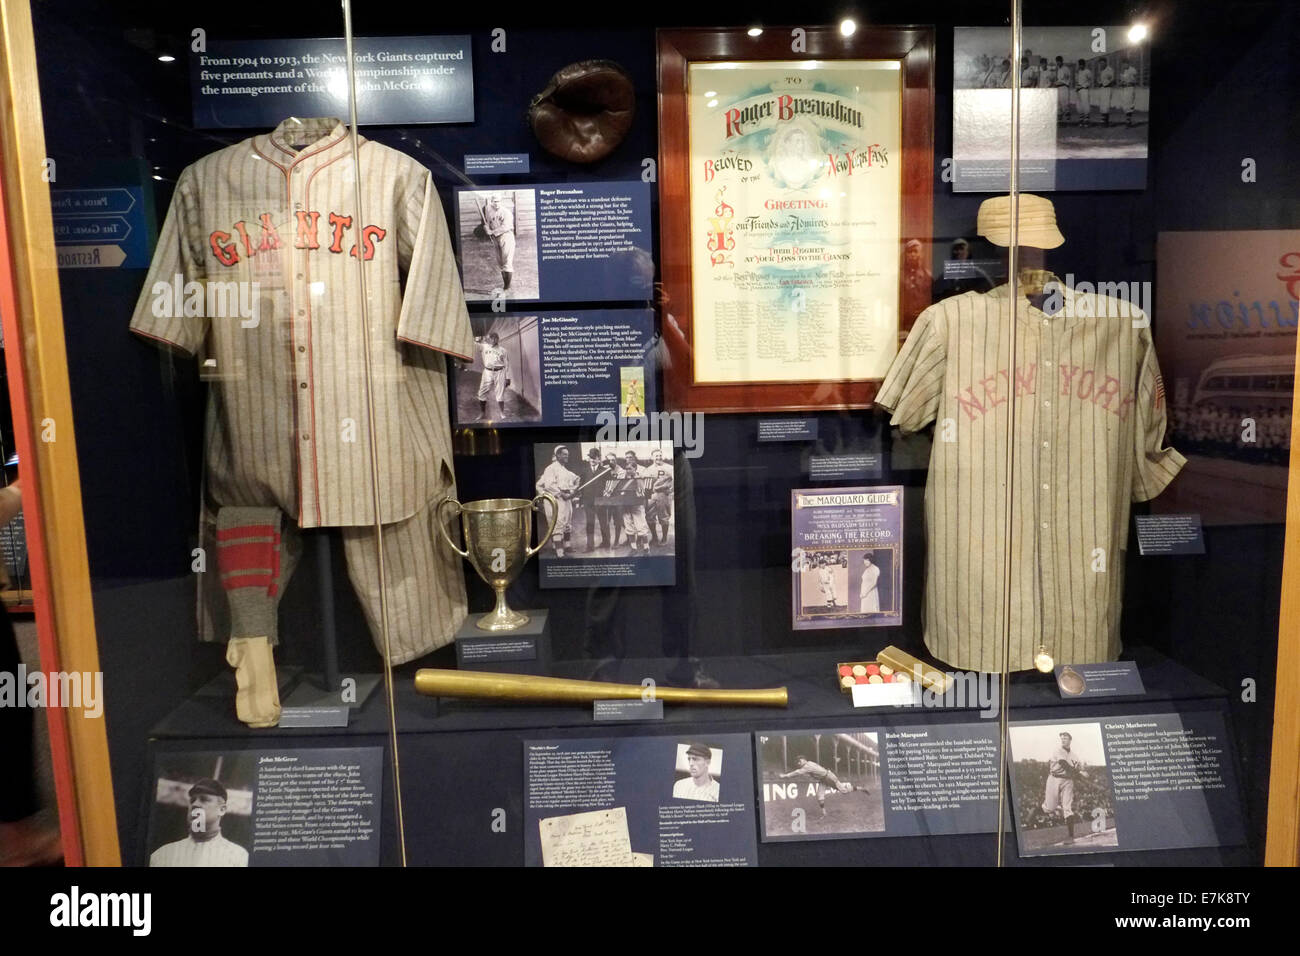 National Baseball Hall of Fame Museum at Cooperstown New York - Stock Image 6529049c0